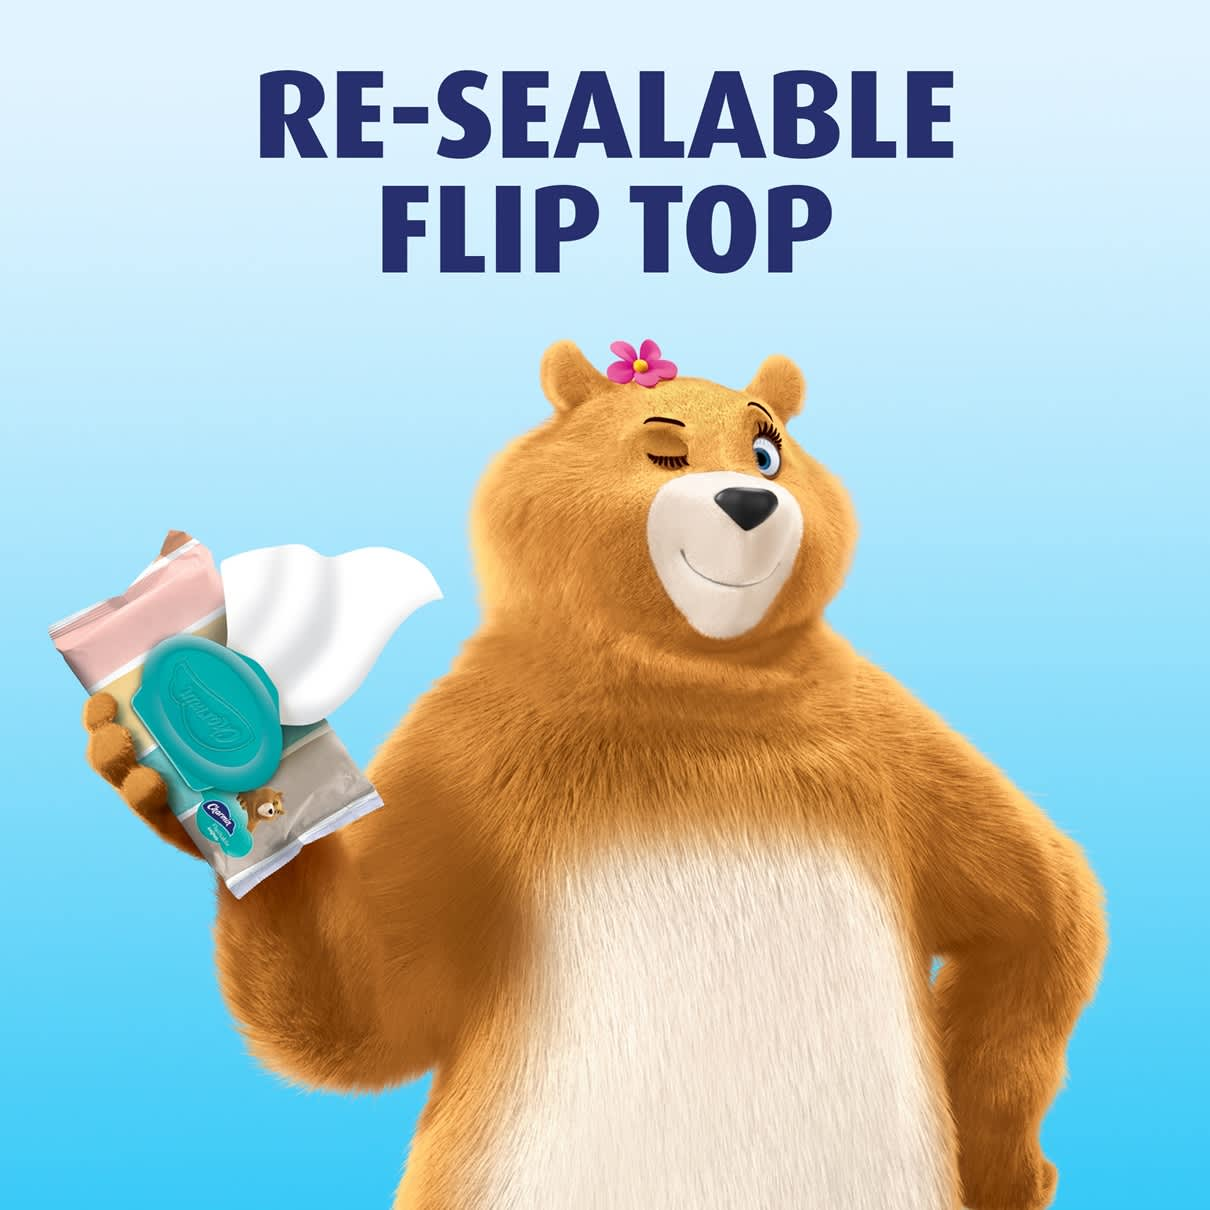 Resealable flip top flushable wet wipes